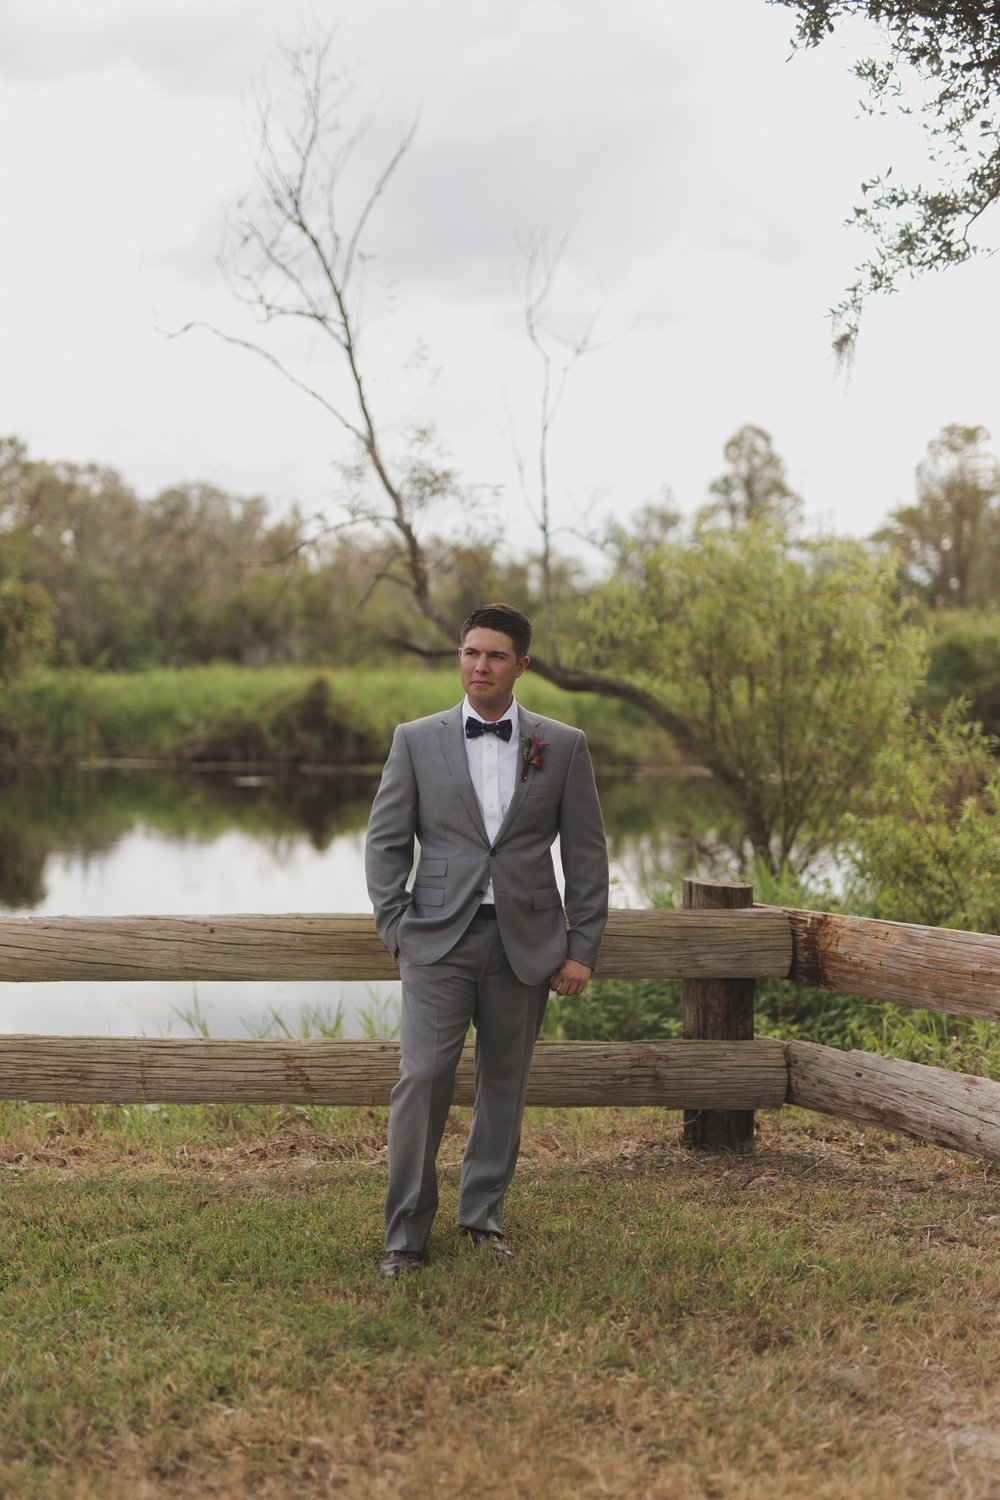 Stacy Paul Photography - destination wedding photographer Florida boho wedding_0032.jpg